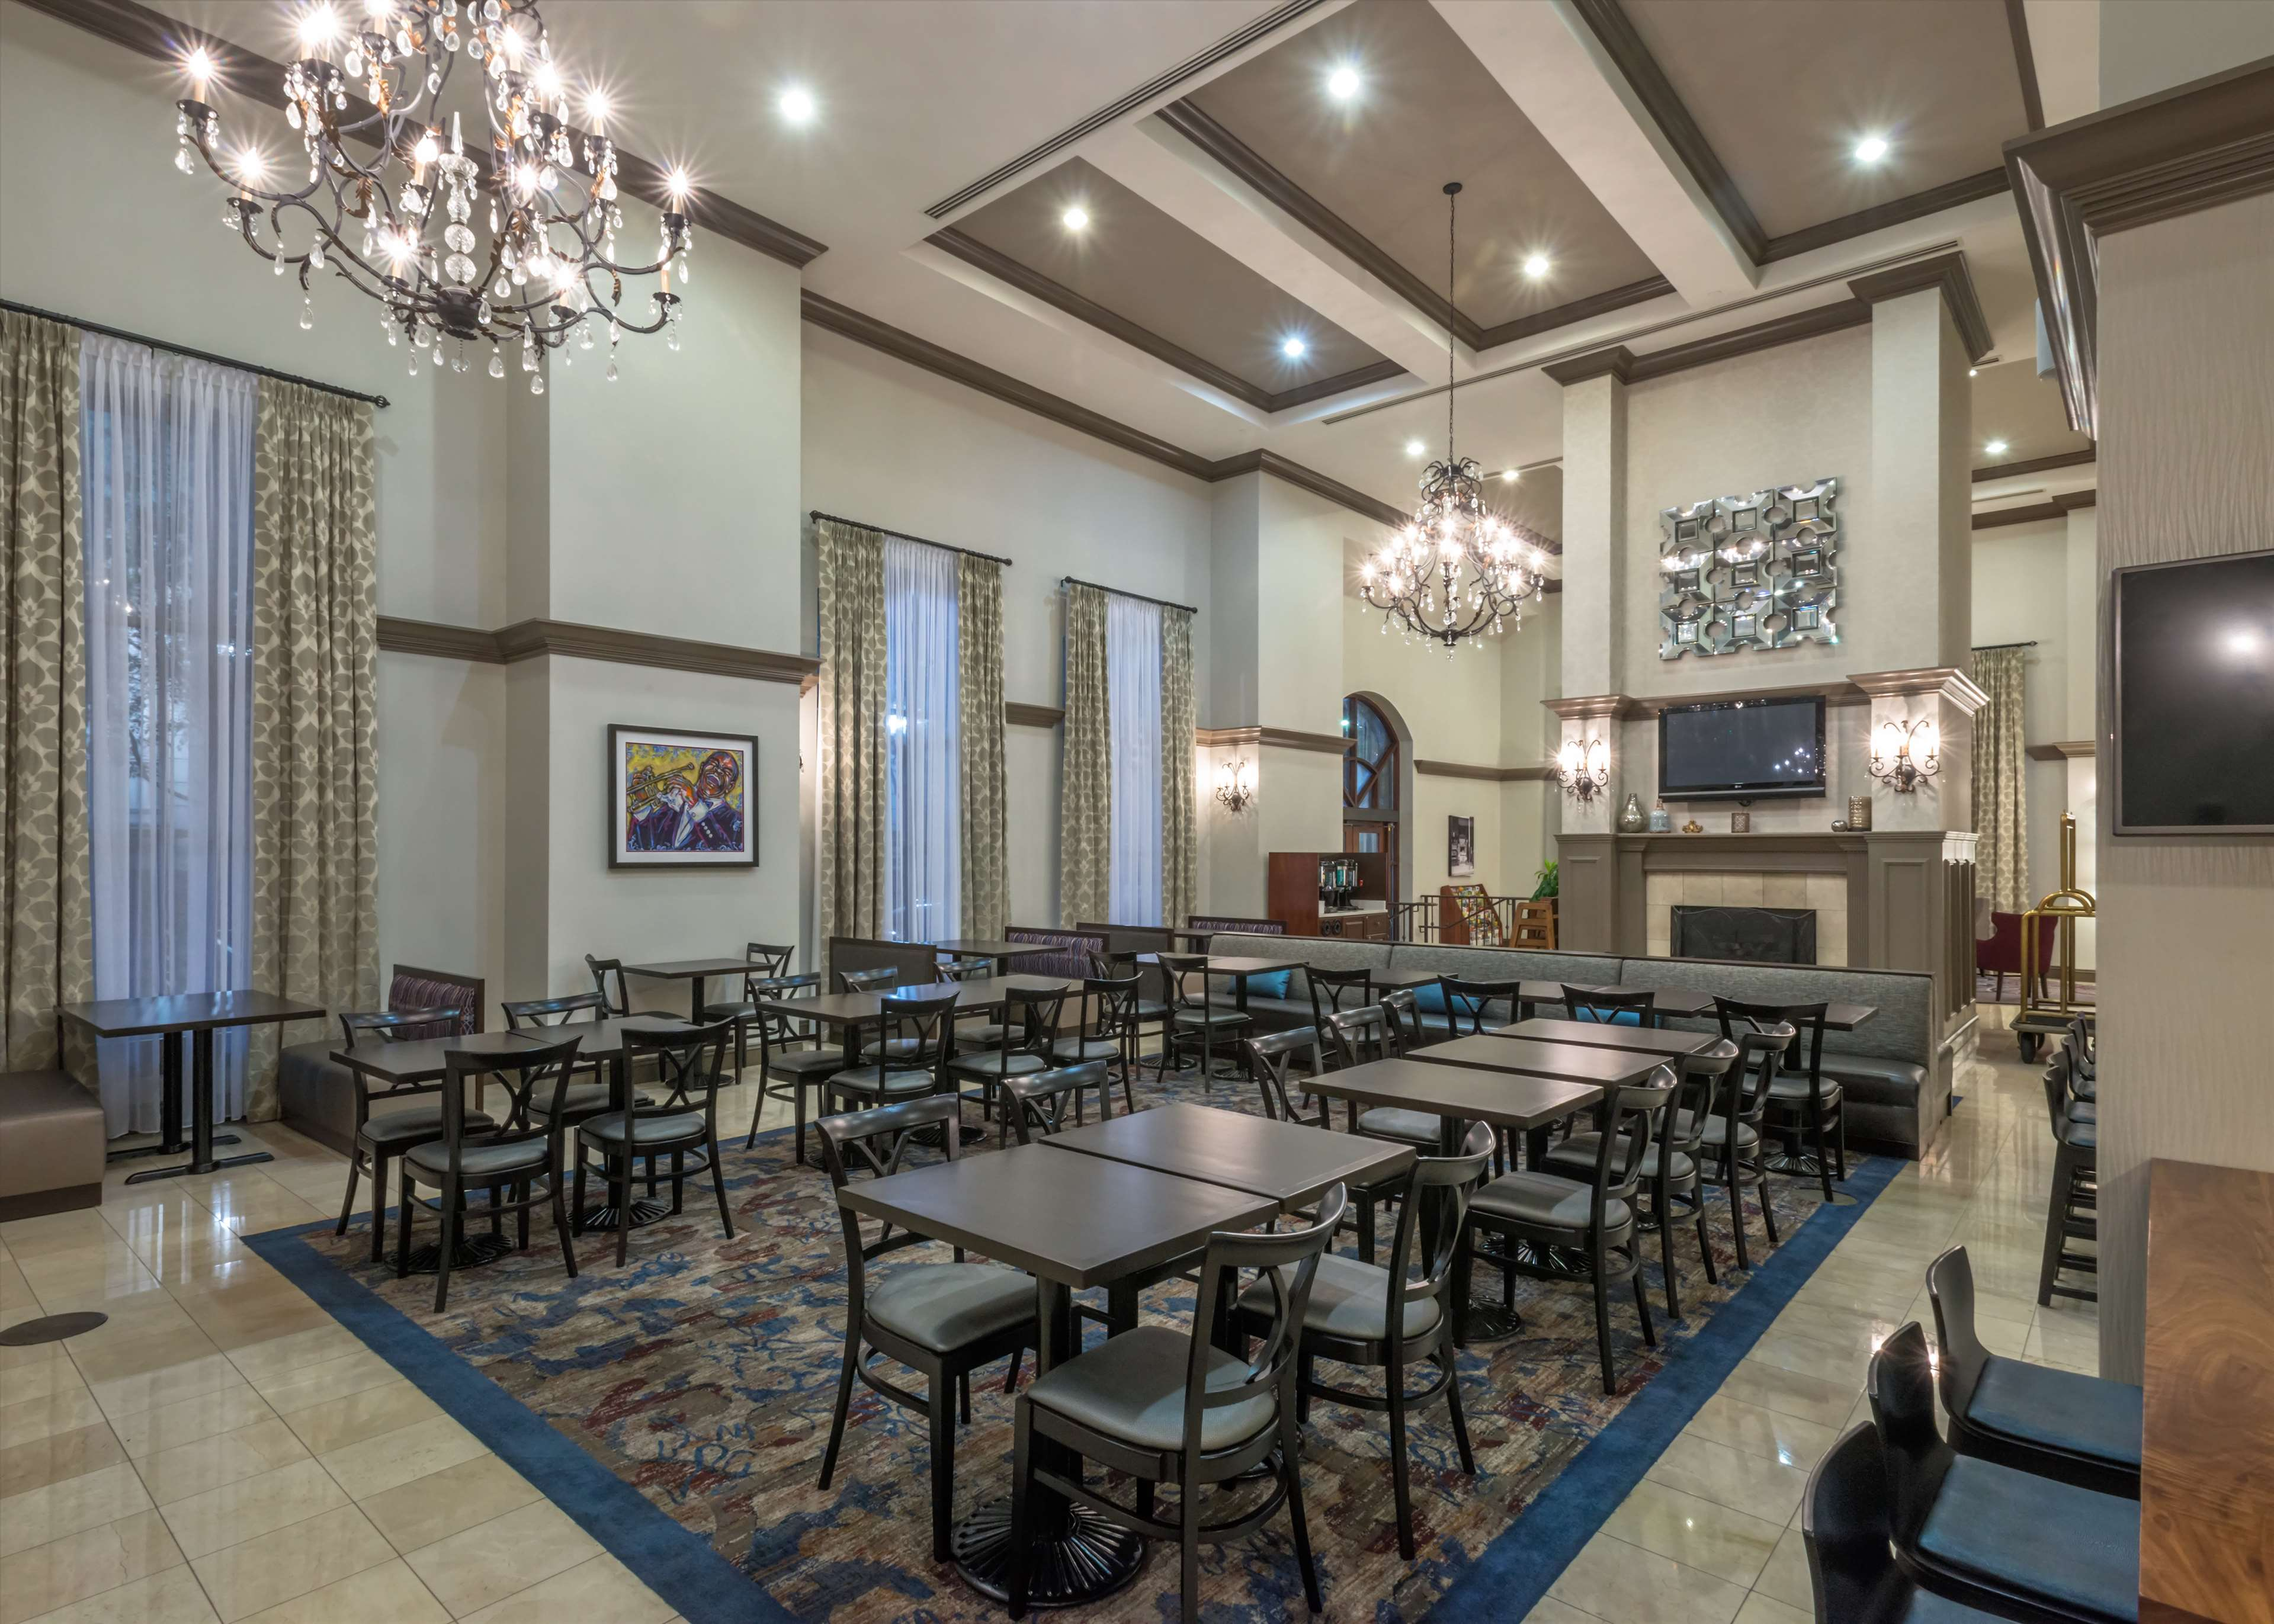 Homewood Suites by Hilton New Orleans image 10